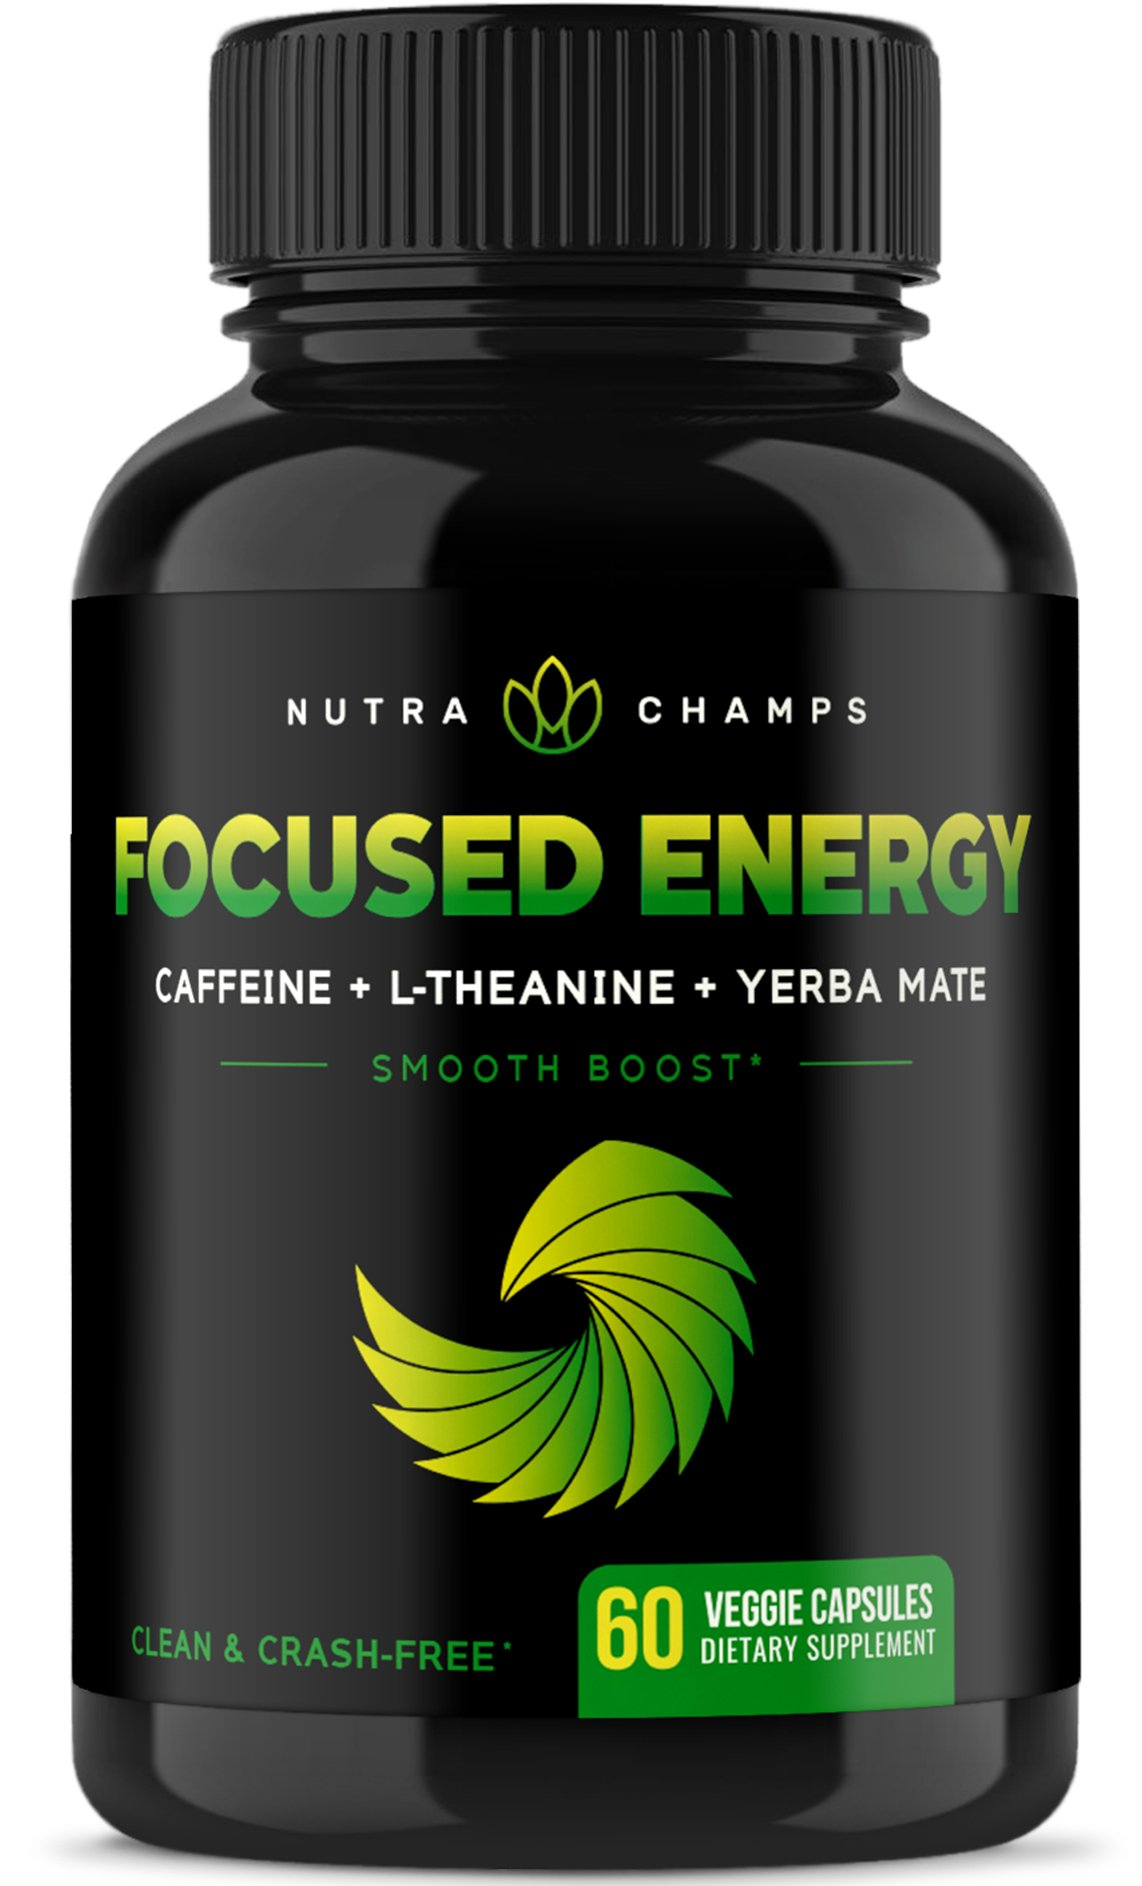 Caffeine with L-Theanine for Energy & Focus - Smooth & Clean Focused Energy - Premium Cognitive Stack with Yerba Mate for Performance - No Crash, No Jitters - Vegan Capsules by NutraChamps